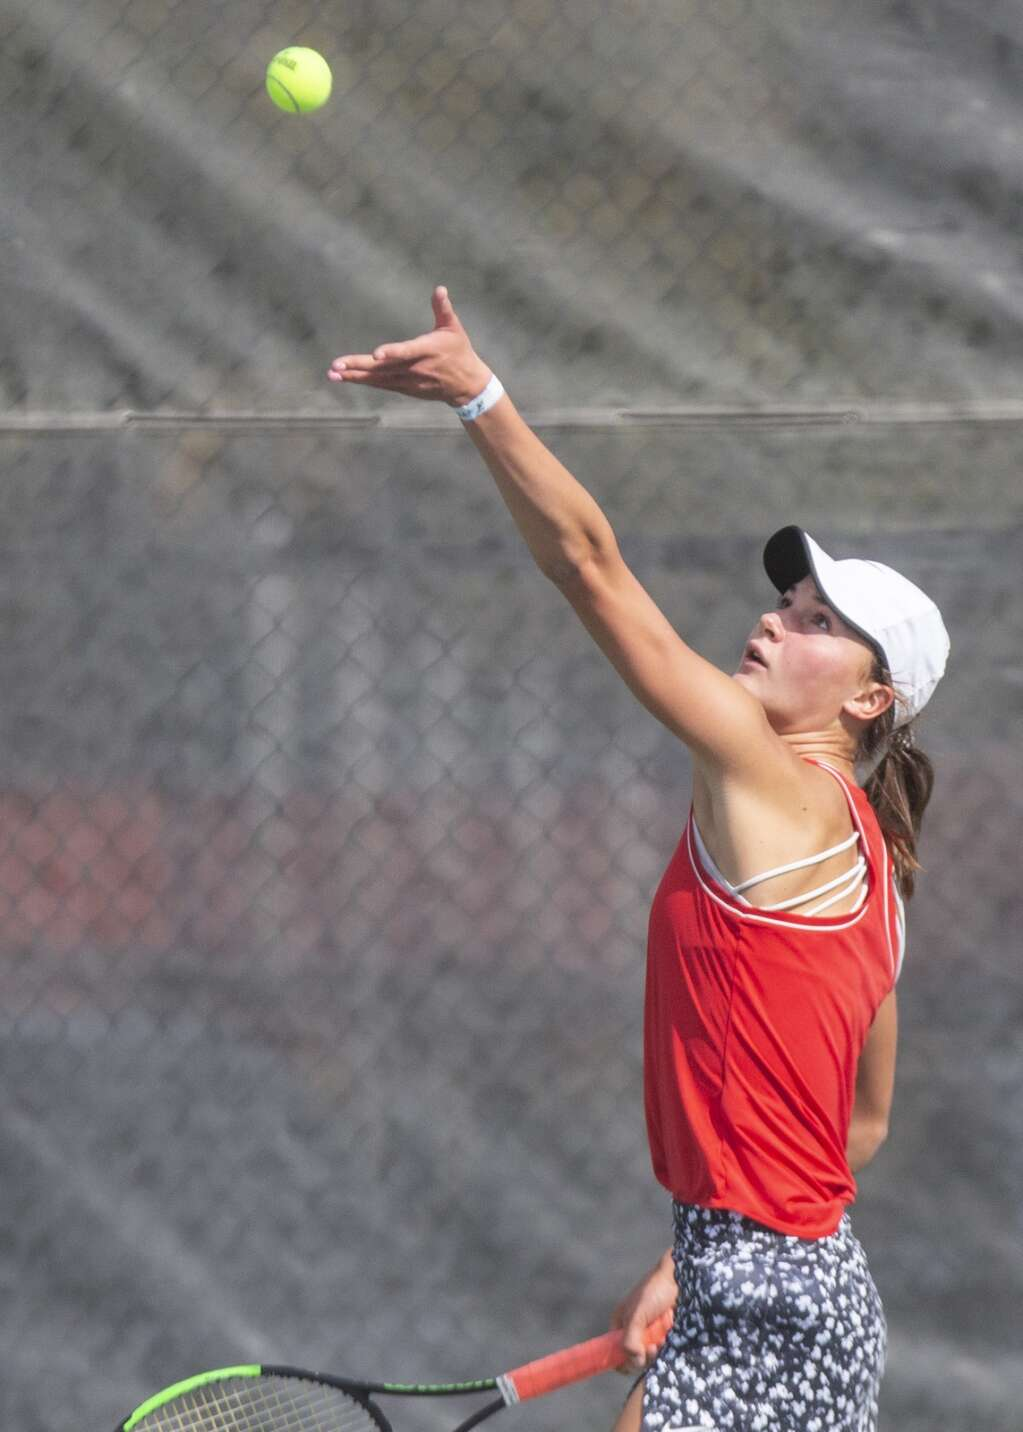 Park City High School's Reagan Harrison tosses the ball up as she serves during her third singles matchup against Provo High School's Sally Otterstrom at the Liberty Park tennis complex as part of the UHSAA 5A girls tennis championships Thursday morning, Oct. 7, 2021. (Tanzi Propst/Park Record)